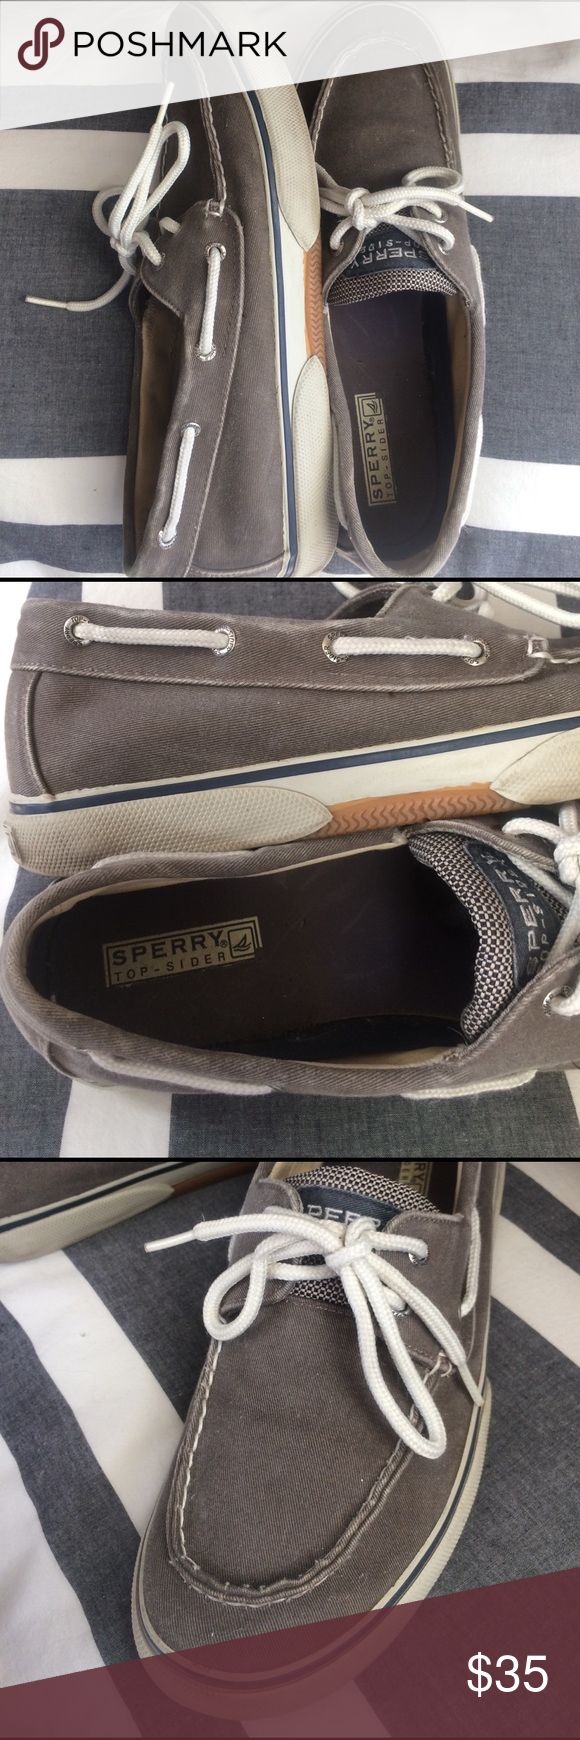 Sperry Top-Sider: Men's Haylard 2-Eye Shoe Chocolate color, men's size 10.5, worn and in good condition, laces in good condition Sperry Top-Sider Shoes Boat Shoes